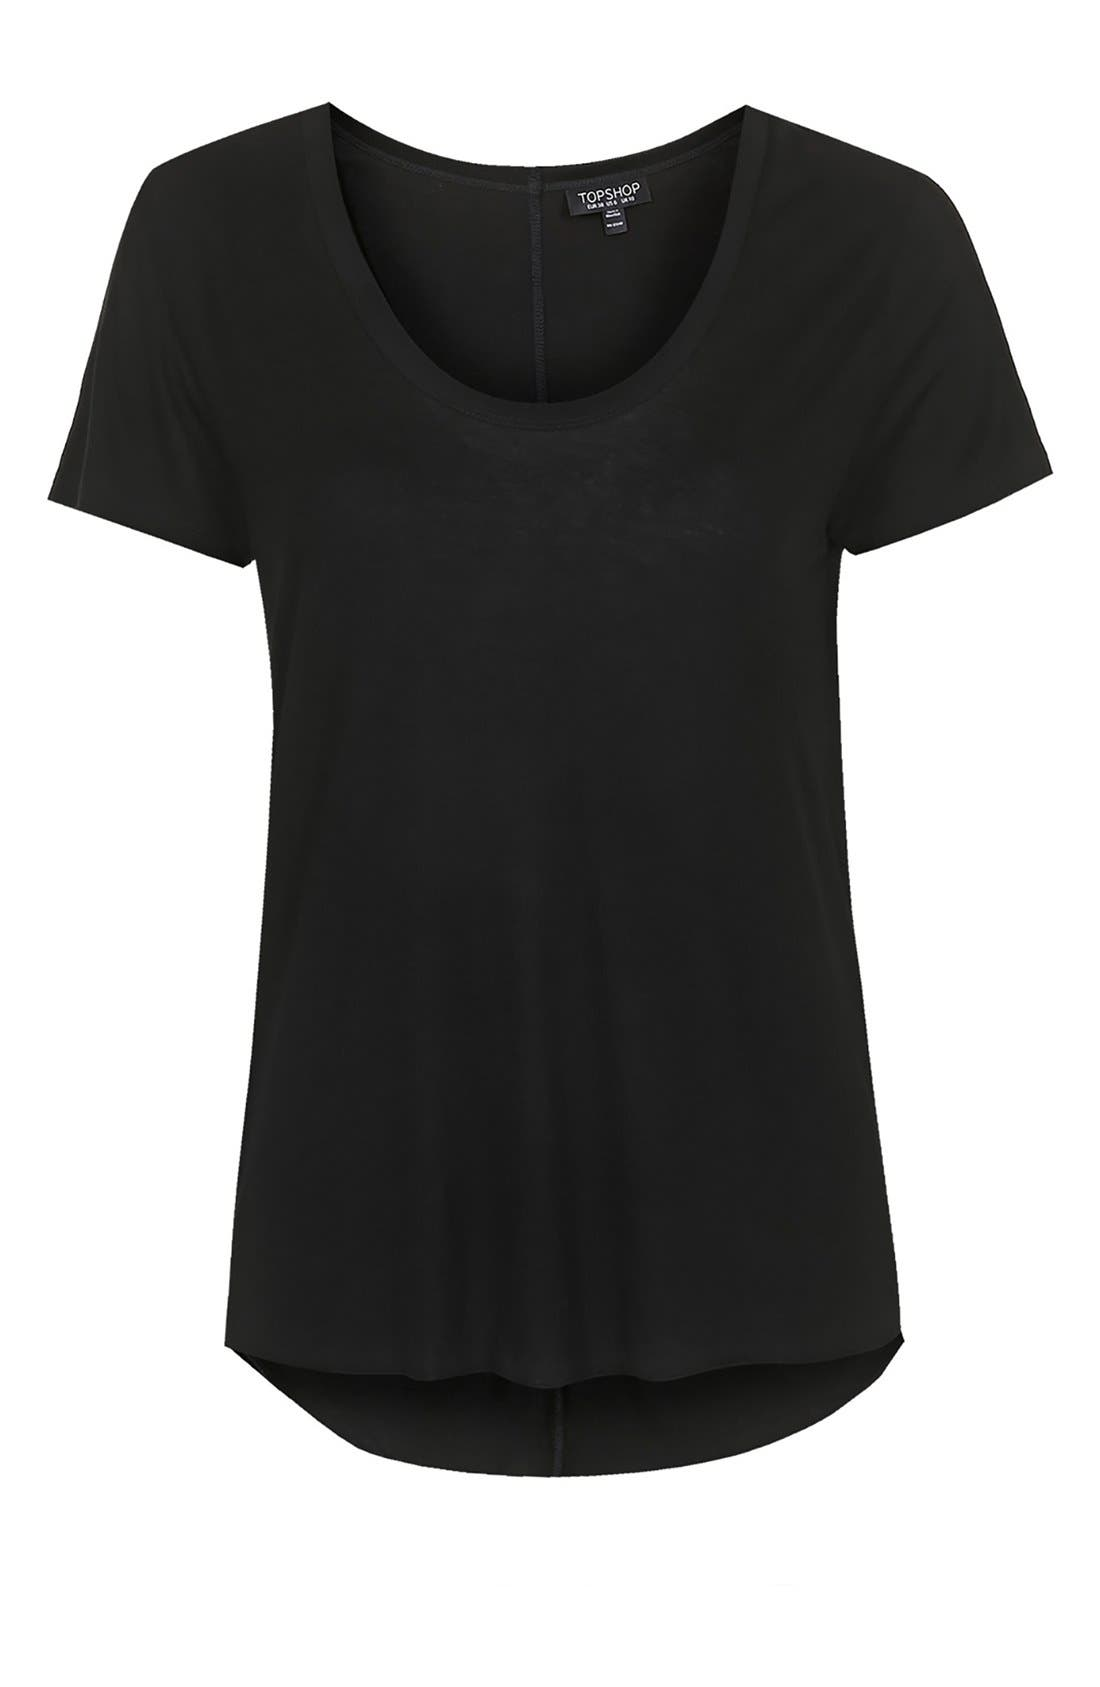 TOPSHOP, Short Sleeve V-Neck Tee, Alternate thumbnail 2, color, 001